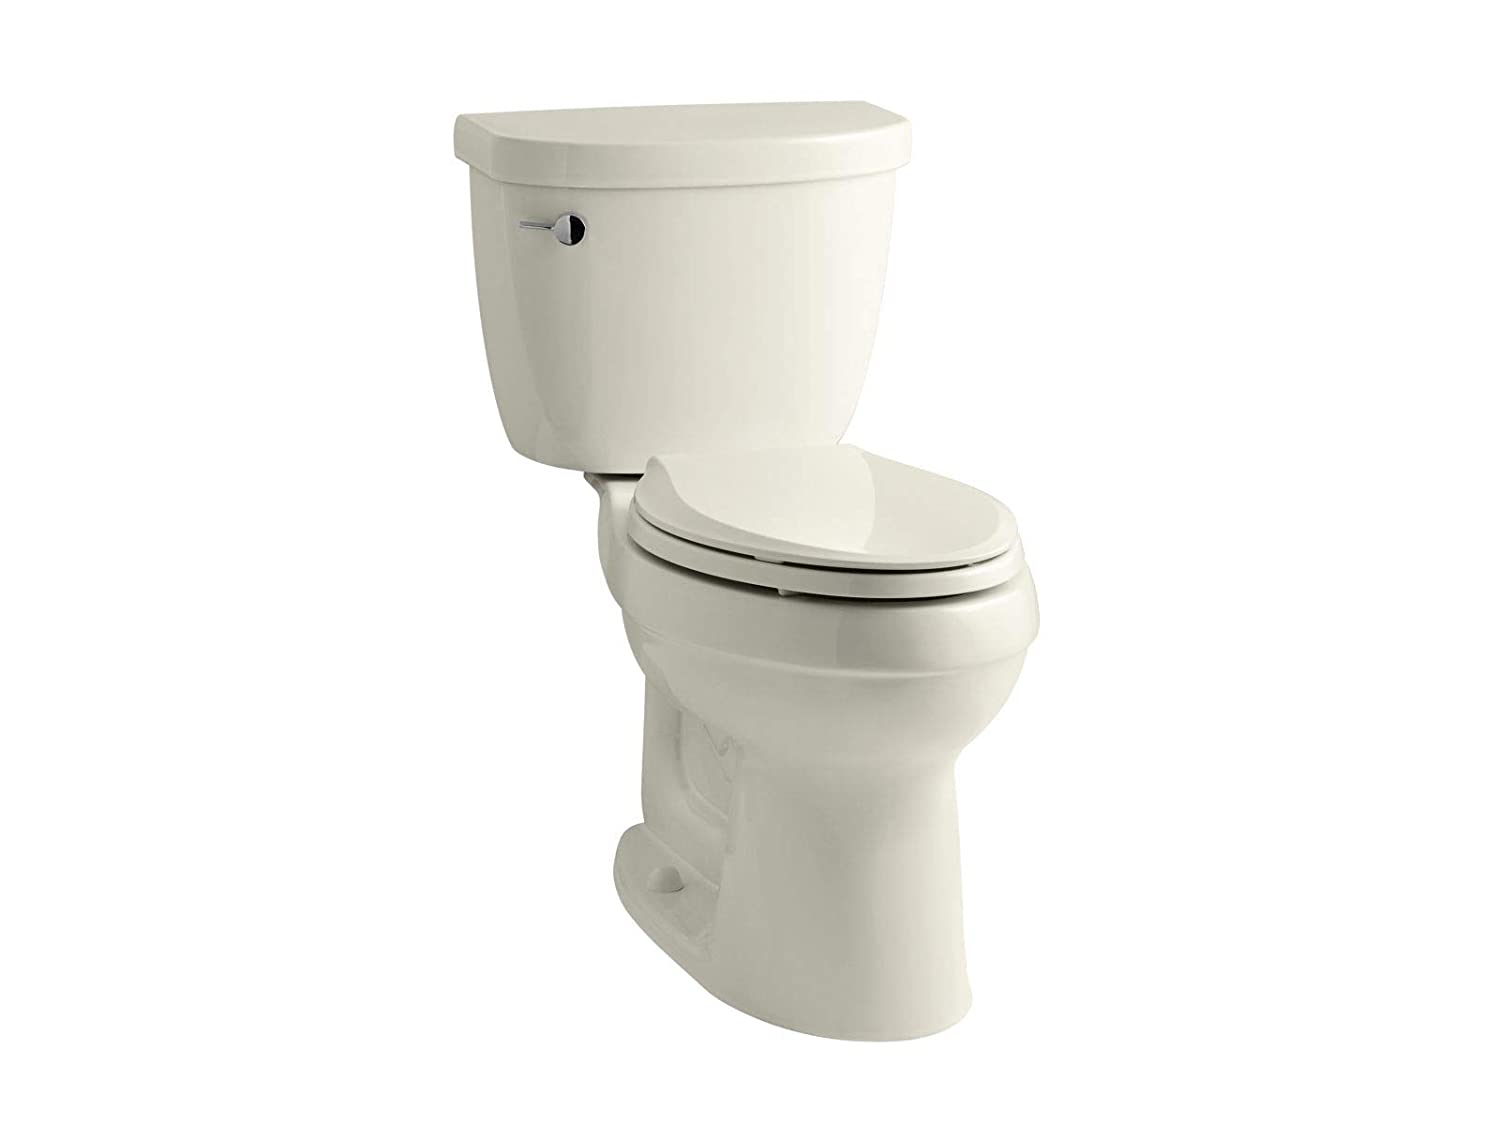 Top 5 Best 1.6 GPF Toilets Reviews in 2020 3